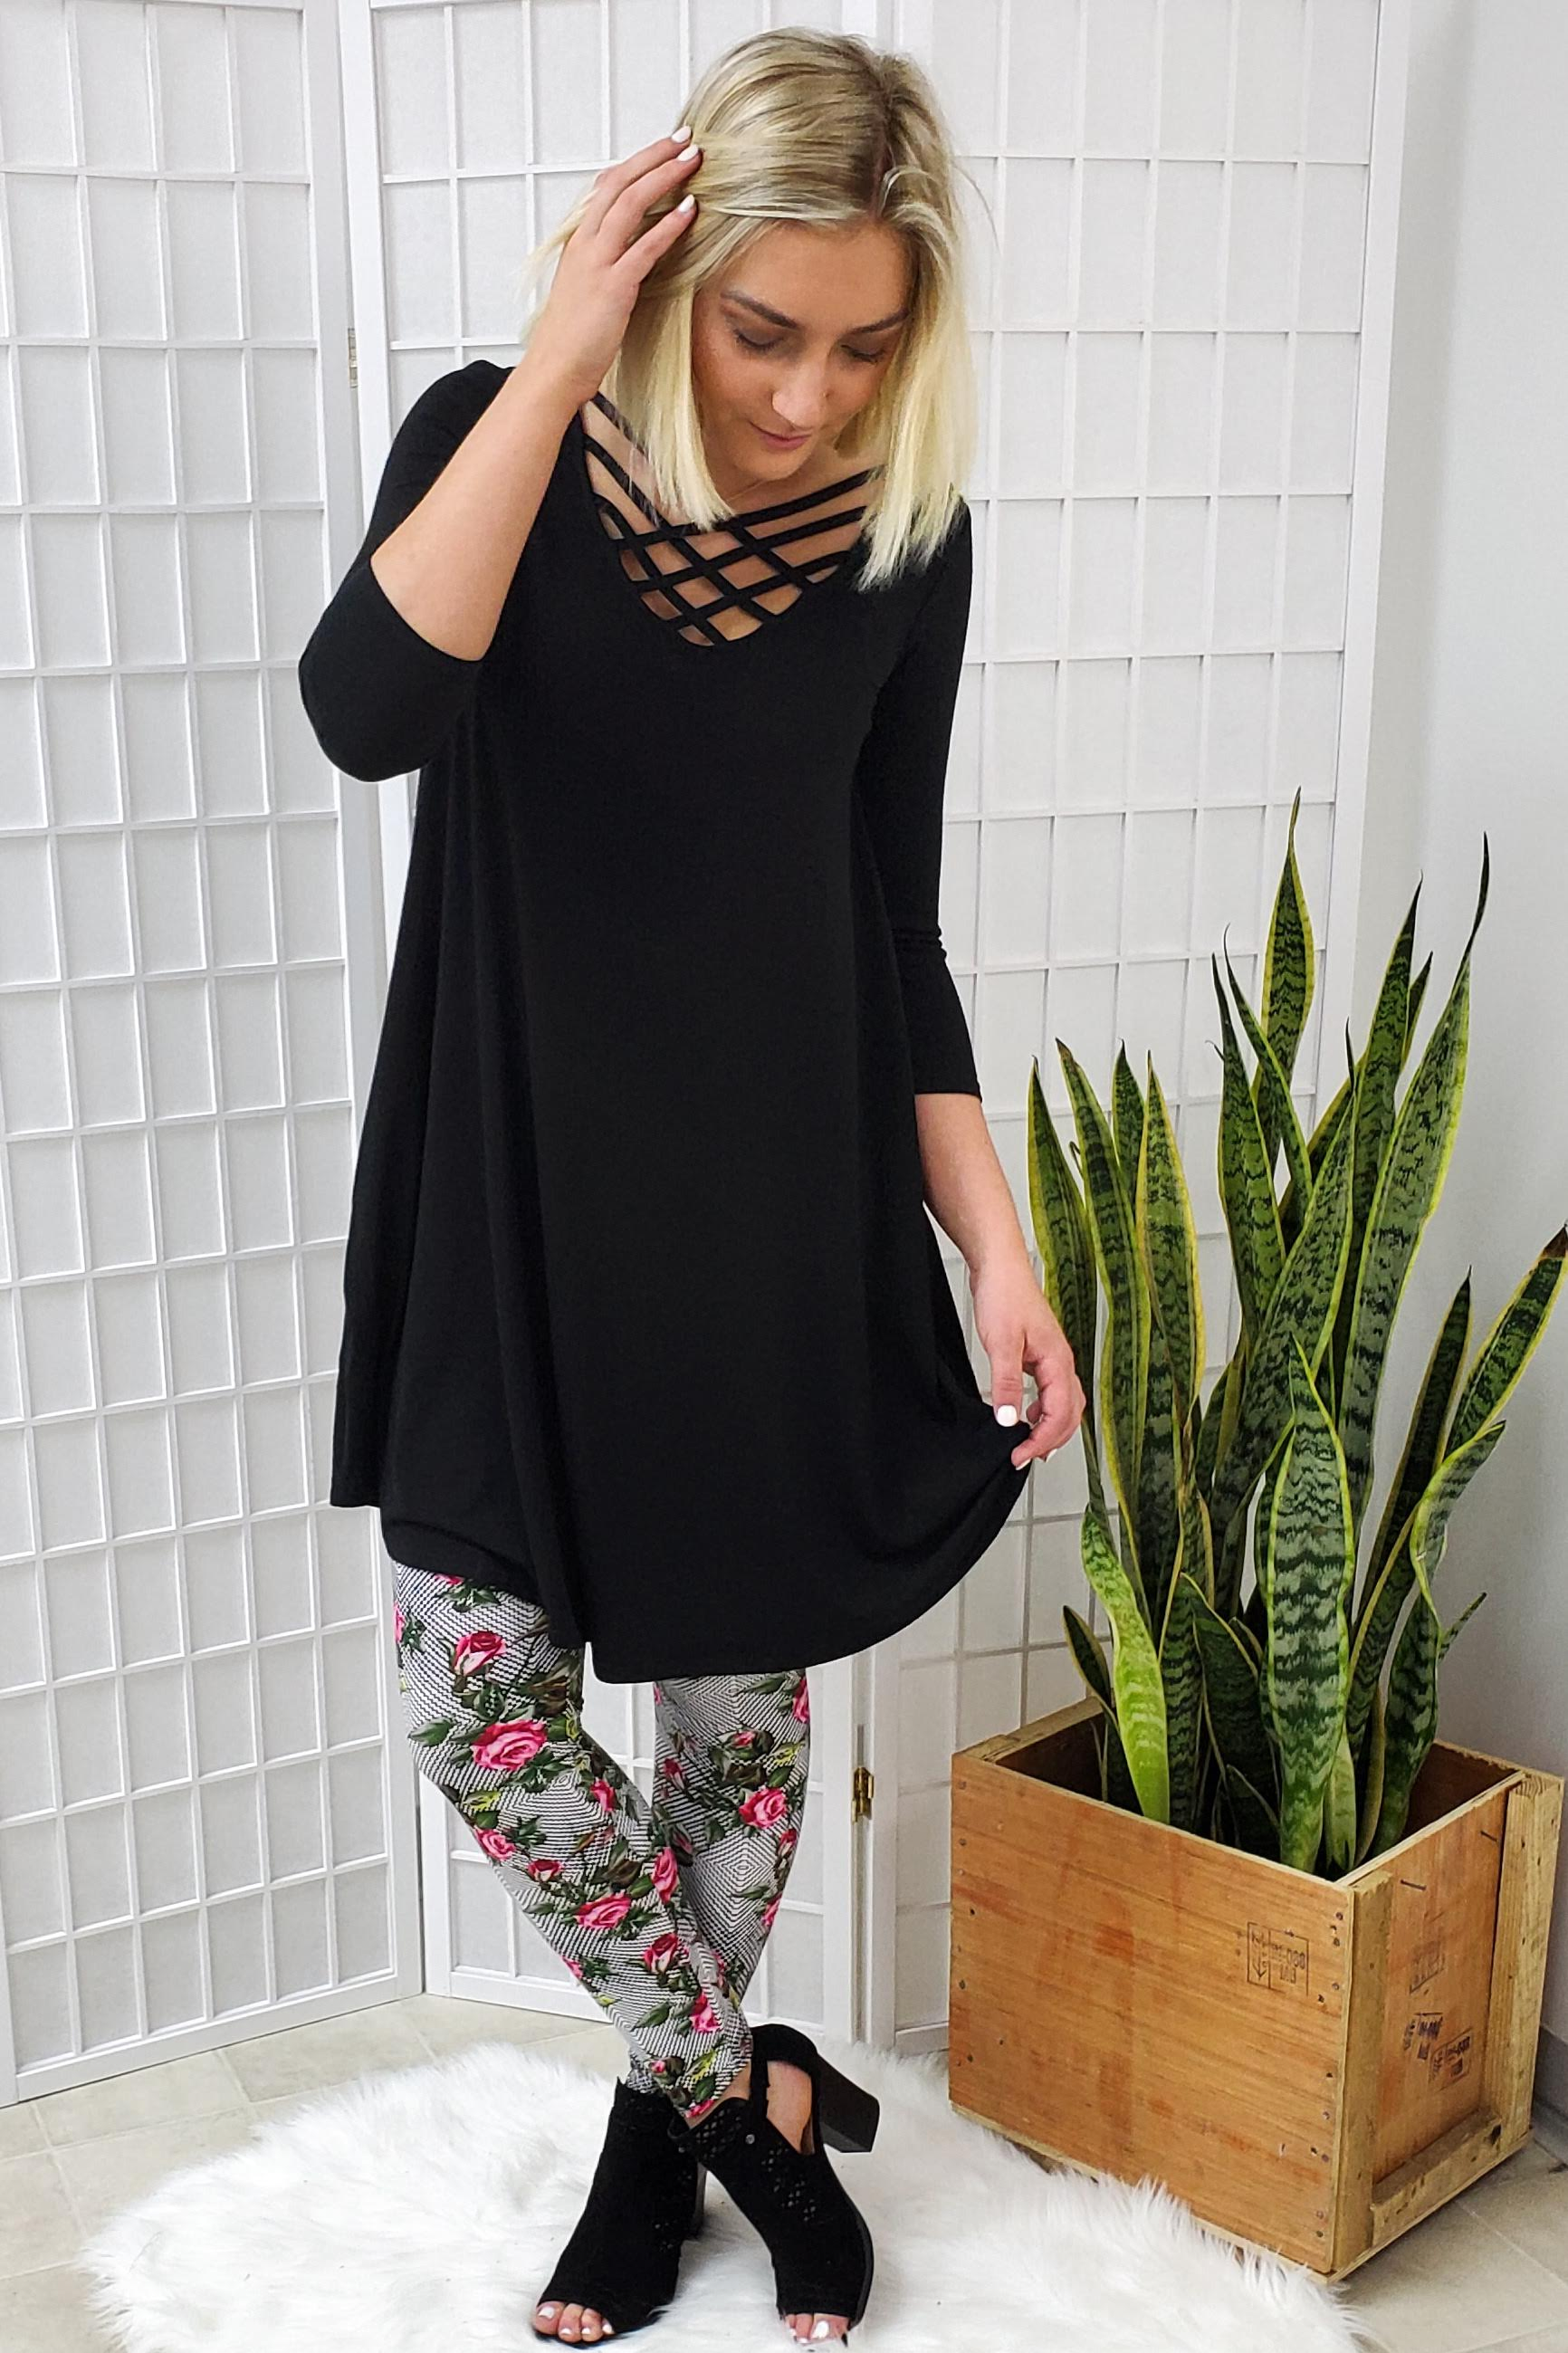 Raven Black Lattice 3/4 Sleeve Dress